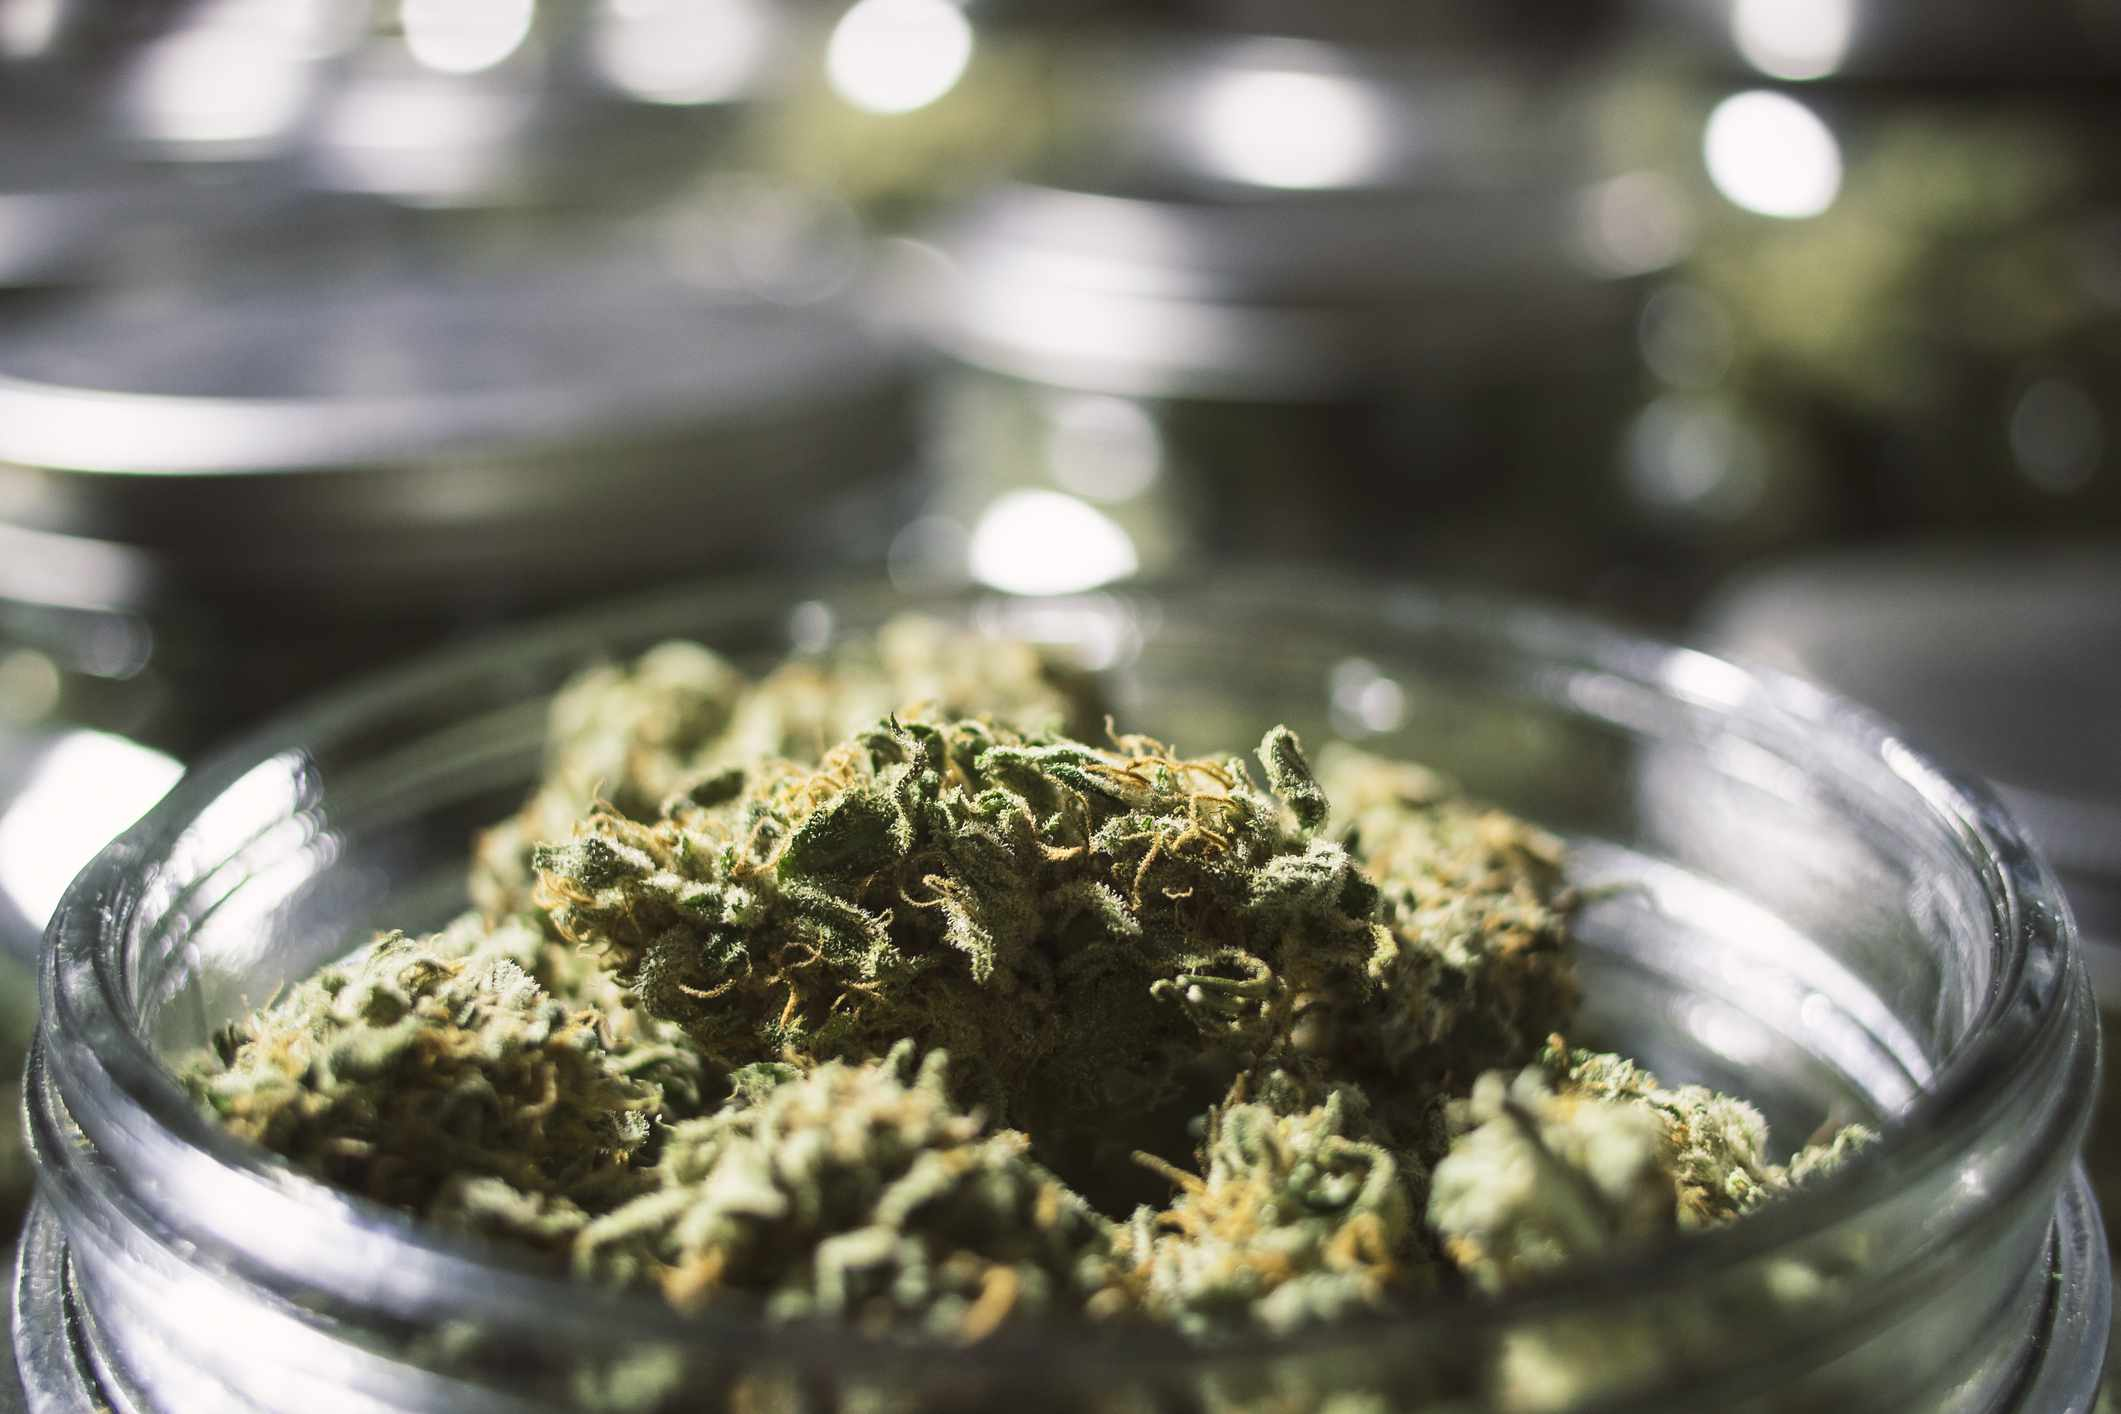 Is Medical Marijuana for Pain Legal In My State?